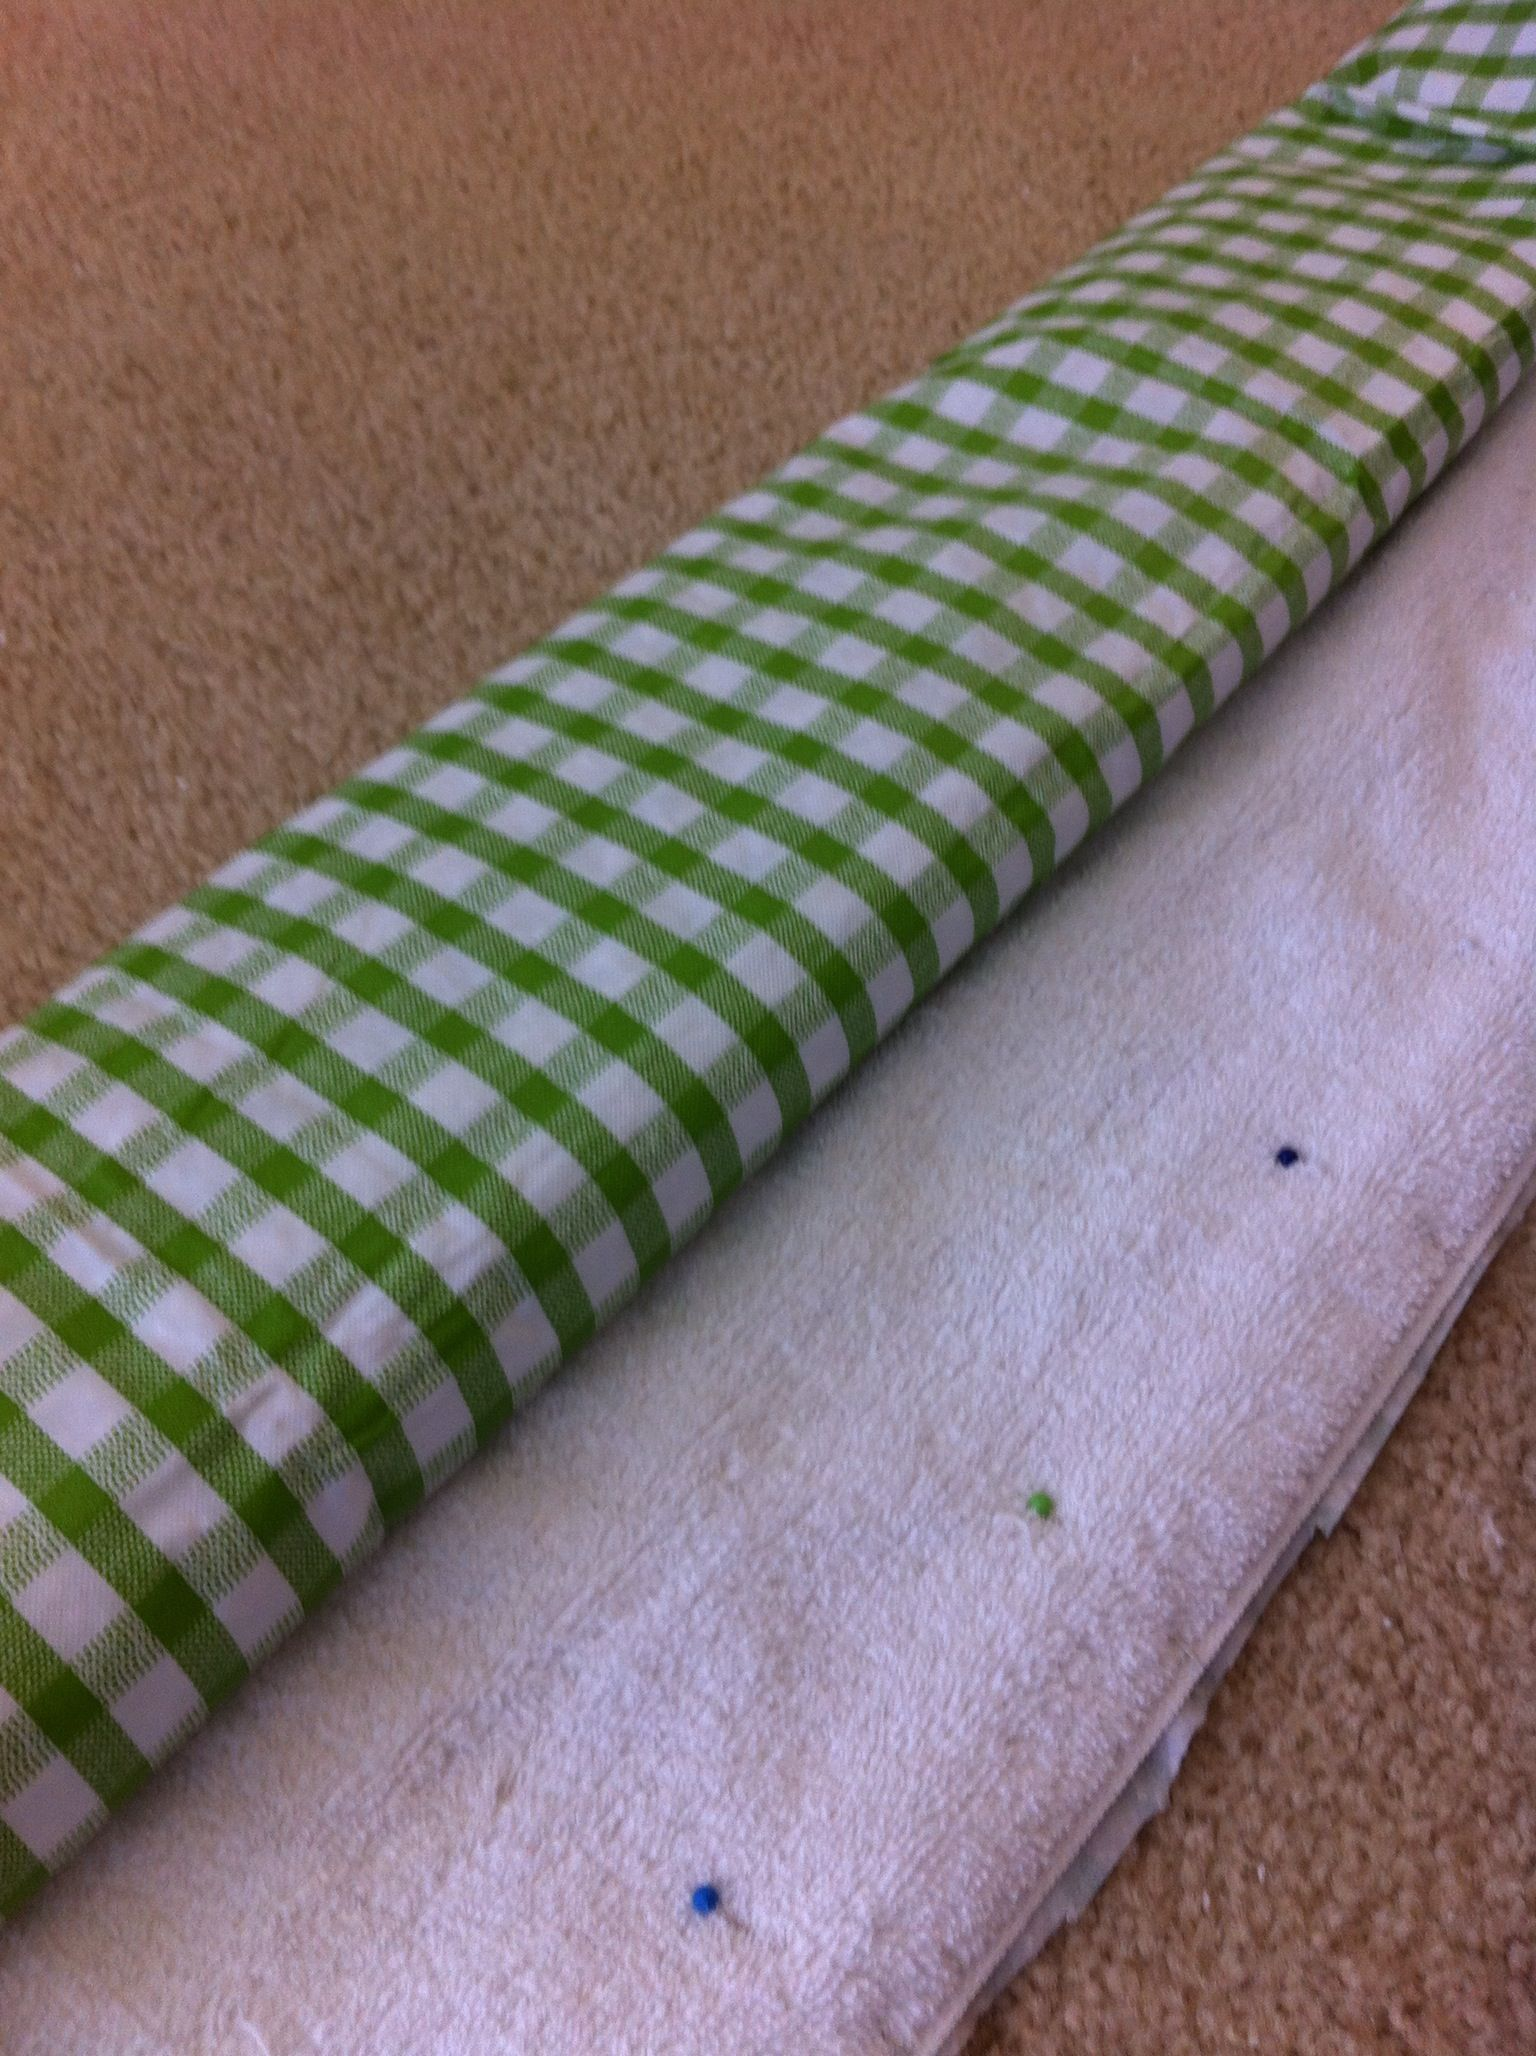 Make your own doggy training or pet accident pads. Sew a